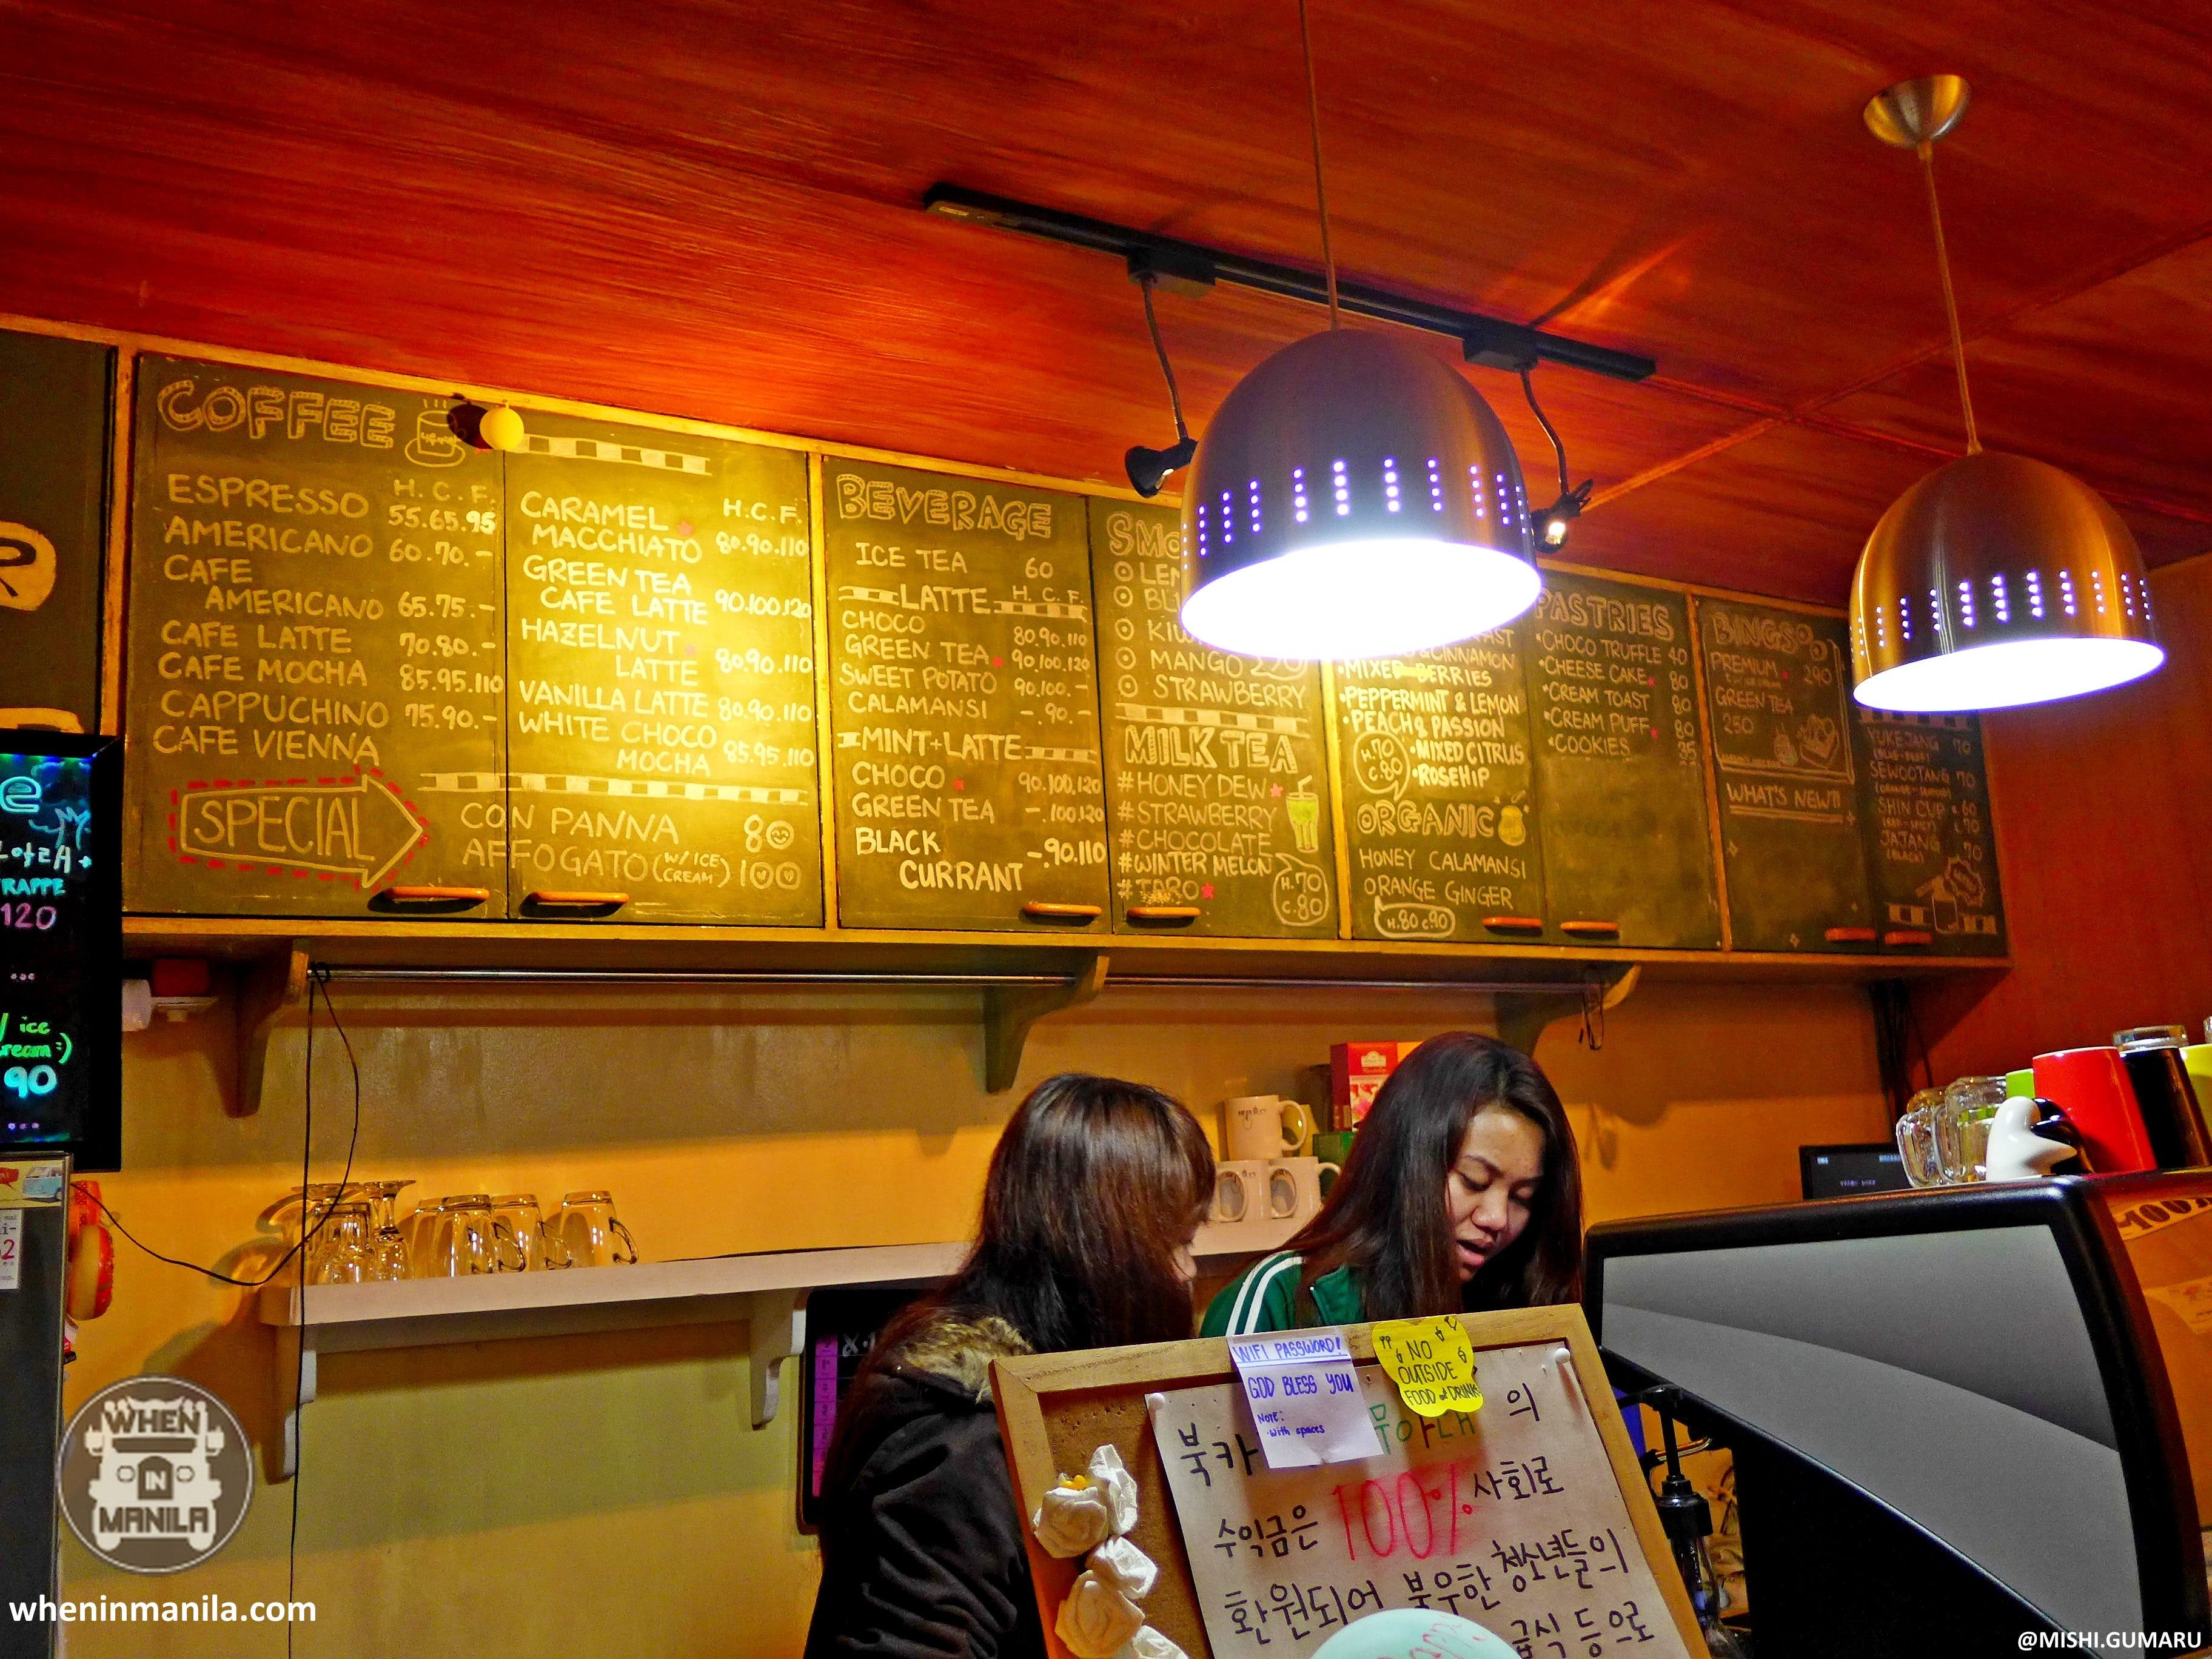 5-Cool-And-Quirky-Cafes-You-Must-Check-Out-When-In-Baguio5